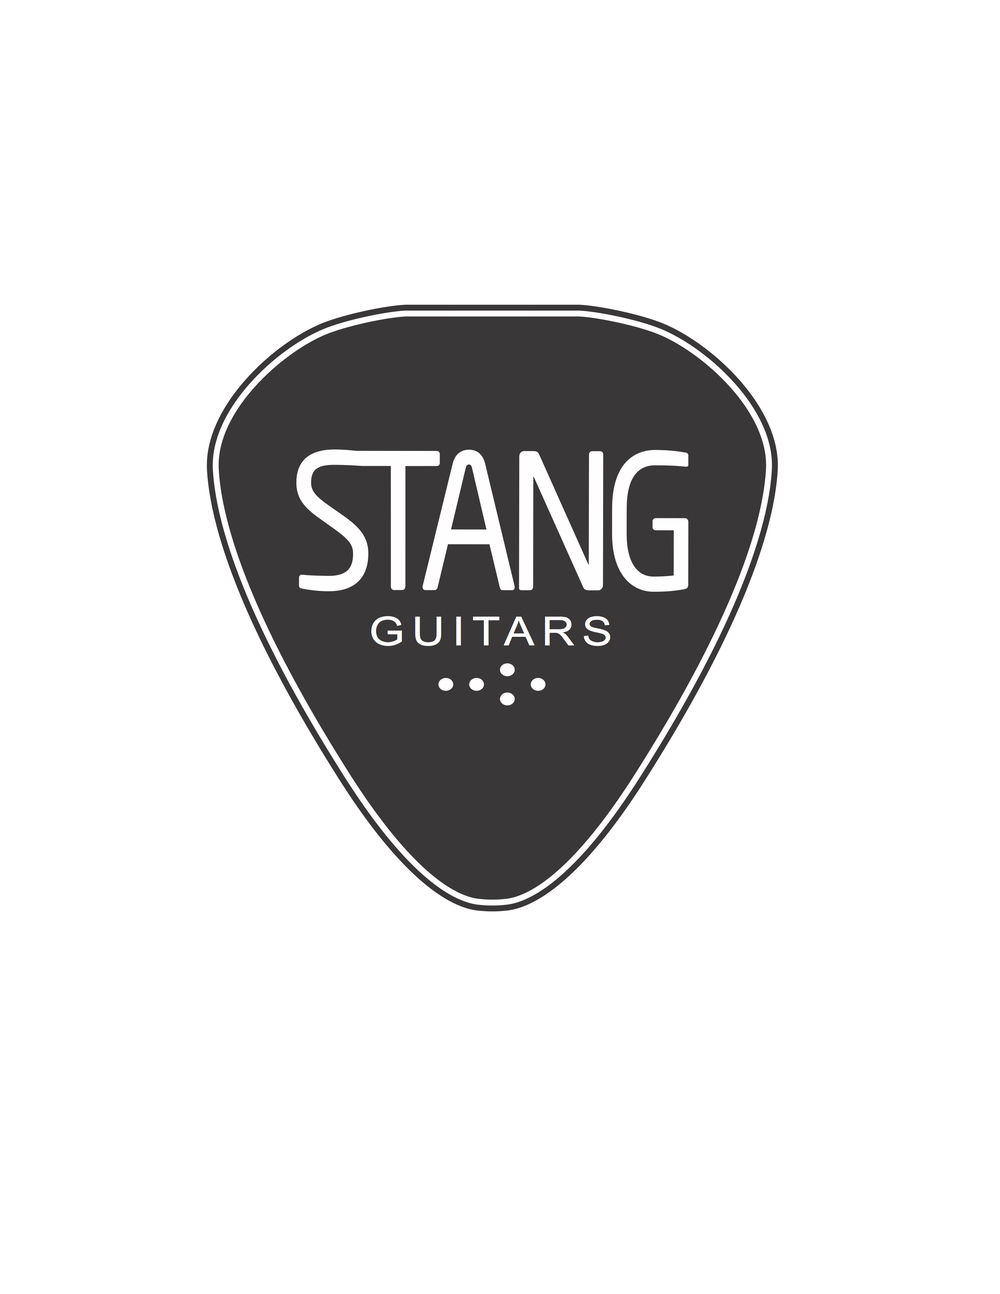 STANG Guitars Final logo.jpg